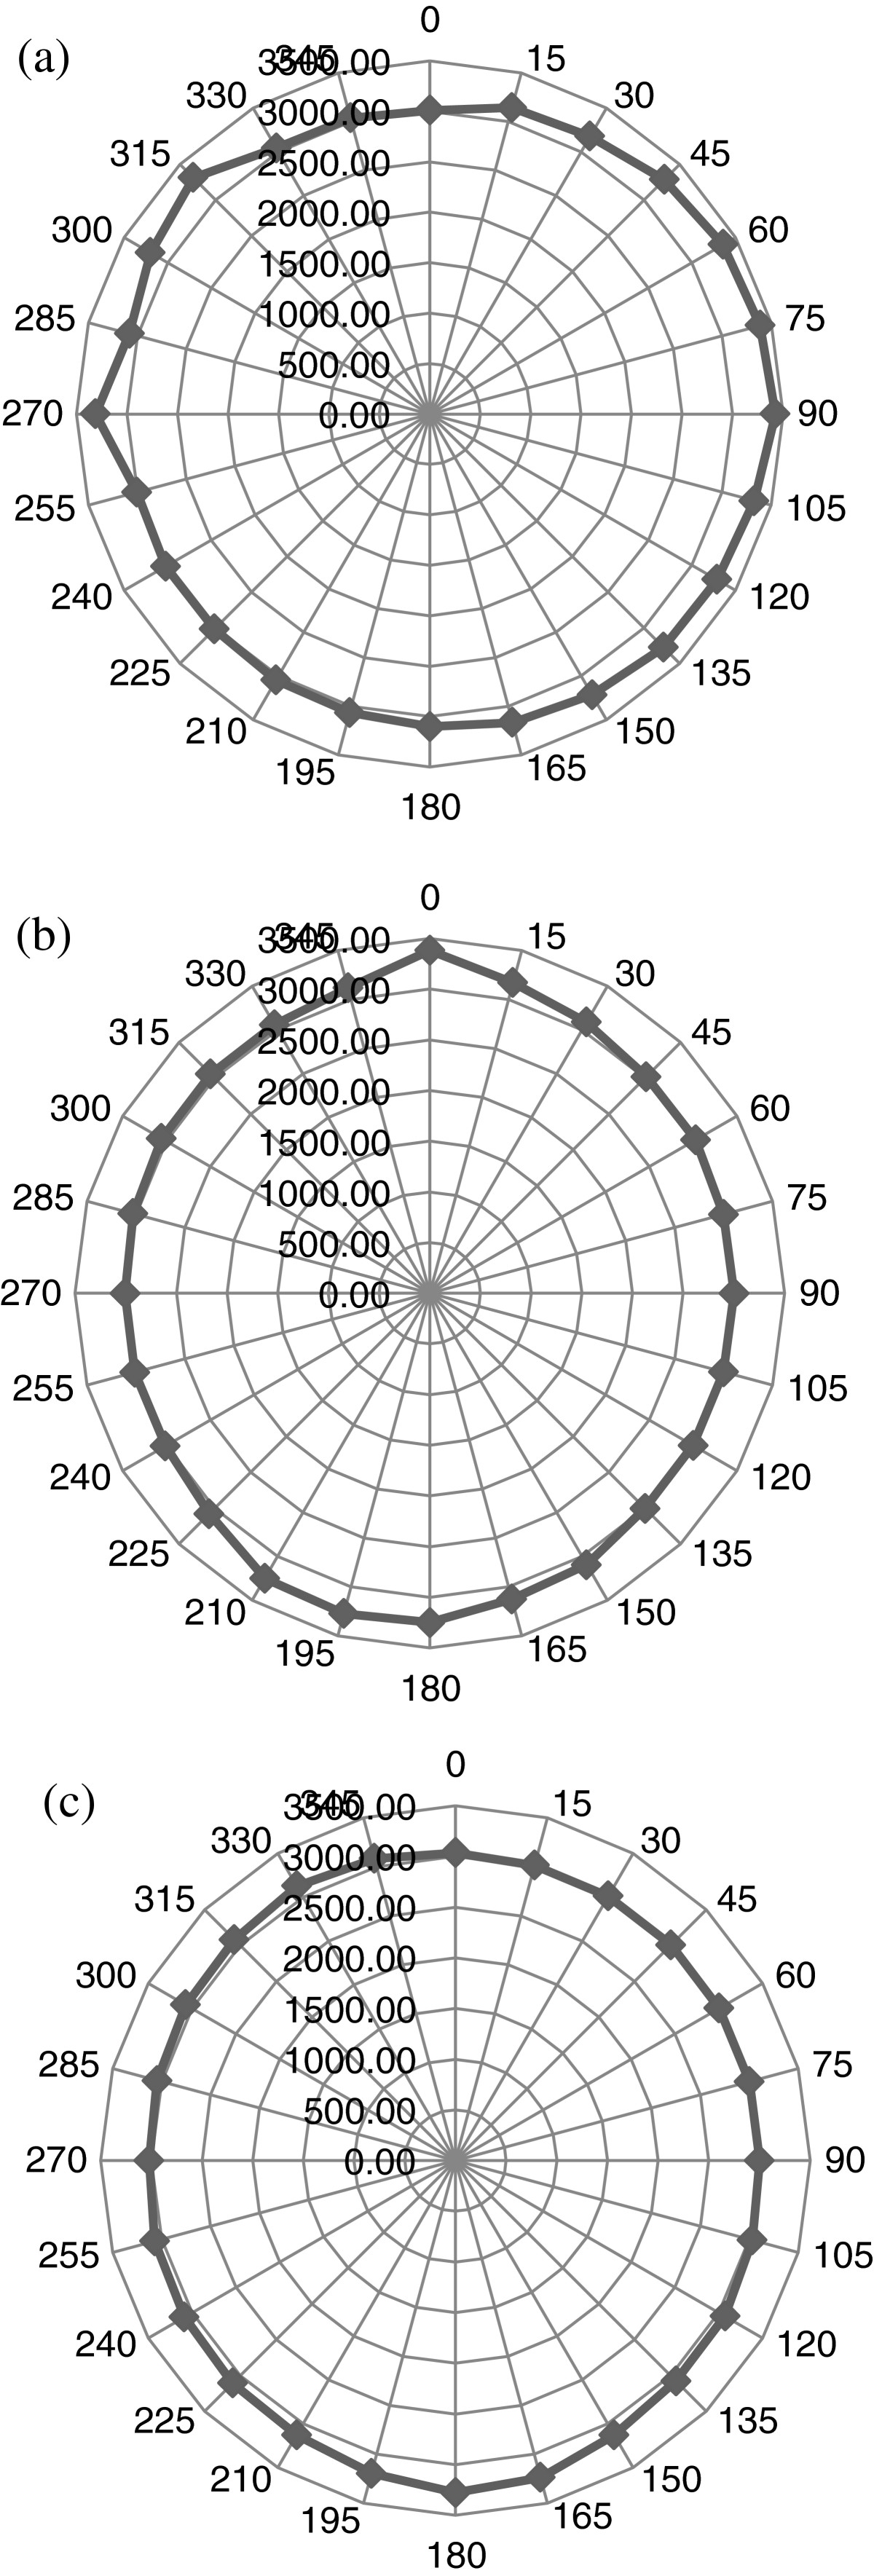 http://static-content.springer.com/image/art%3A10.1186%2F2050-5736-1-5/MediaObjects/40349_2012_Article_6_Fig9_HTML.jpg